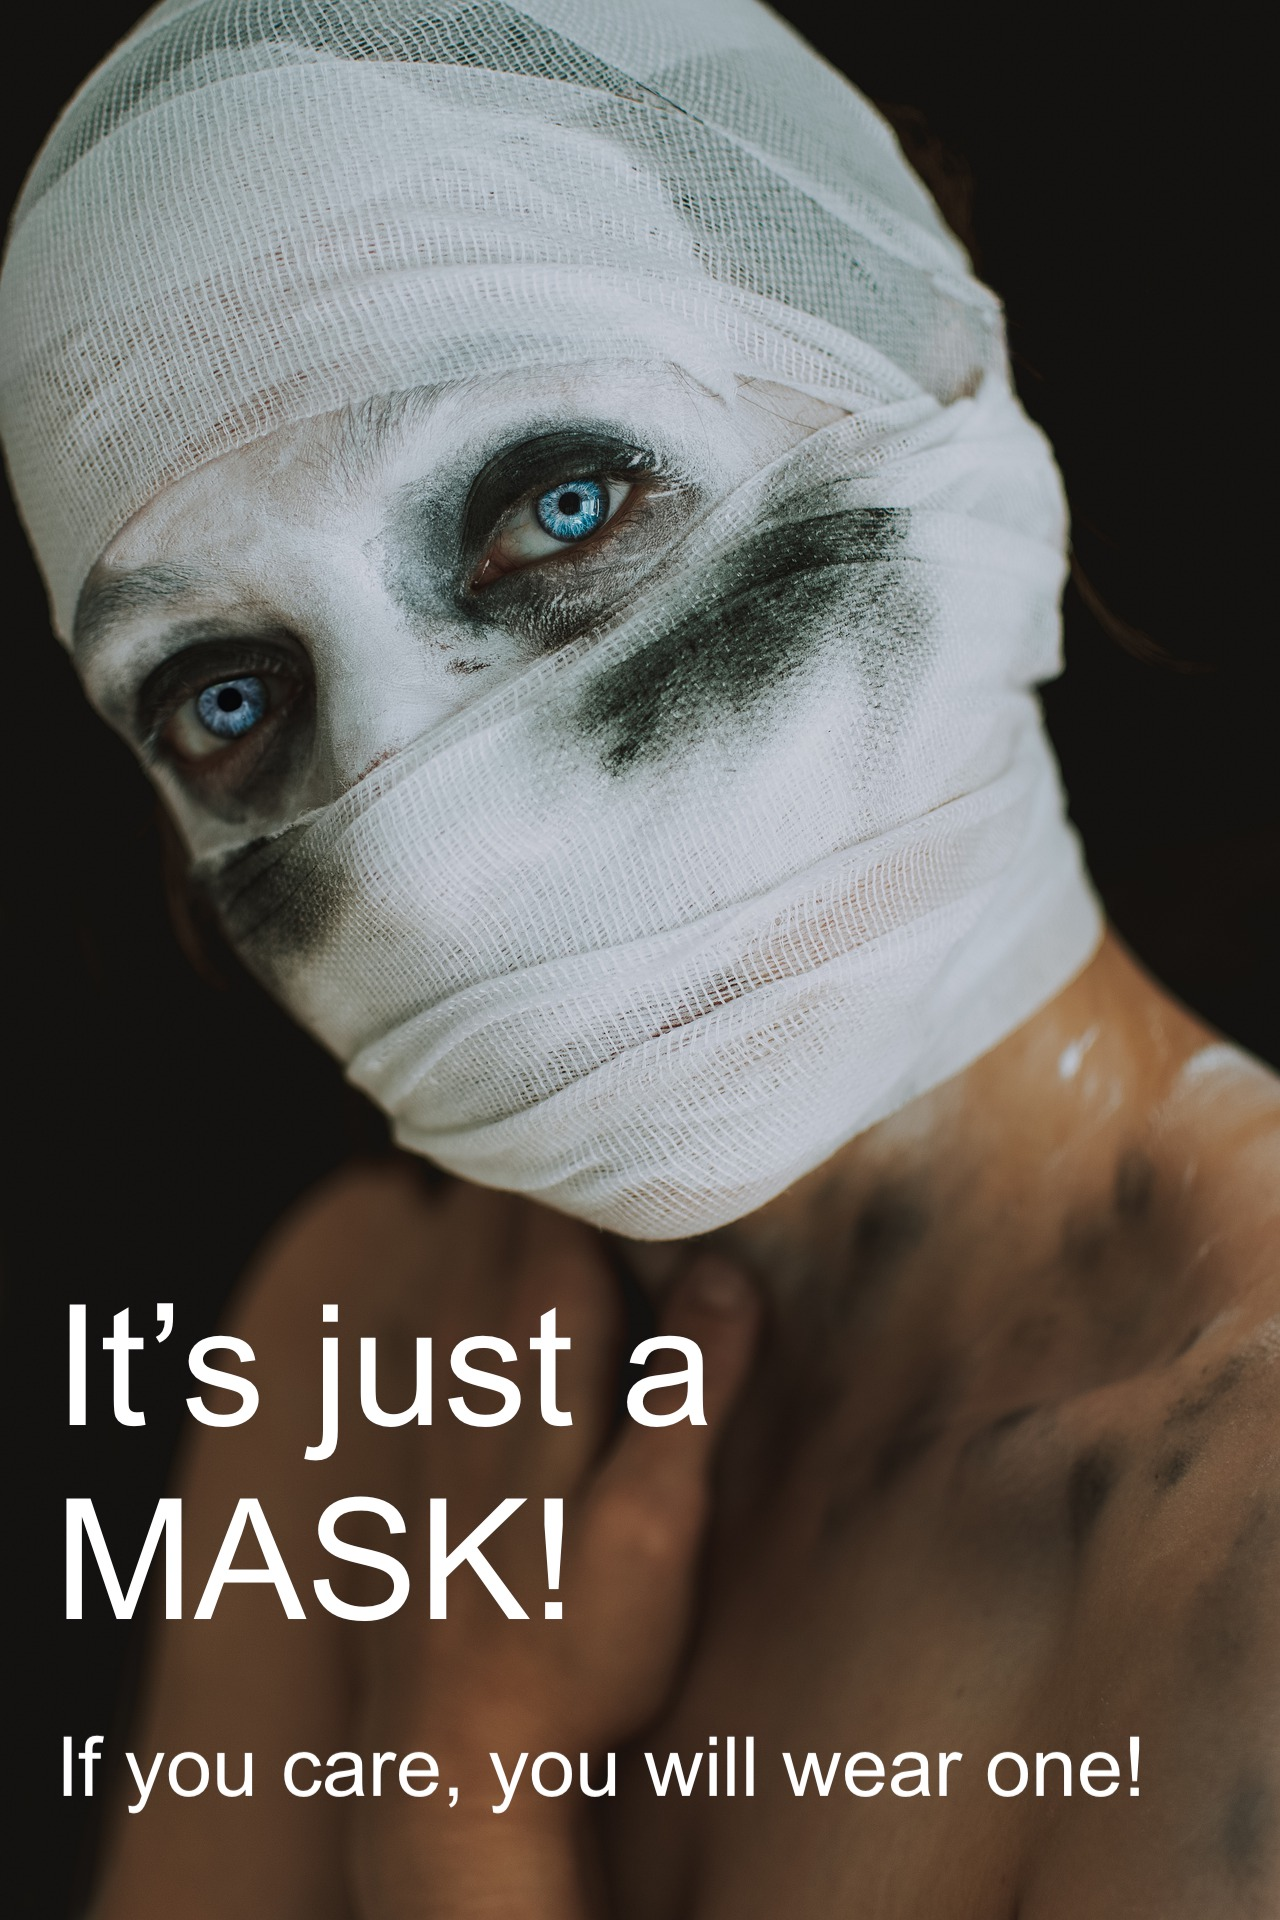 COEUR D'ALENE, ID–EX HOSPITAL CEO POSTS MISLEADING INFORMATION IN LOCAL PAPER TO ENCOURAGE MASK WEARING!